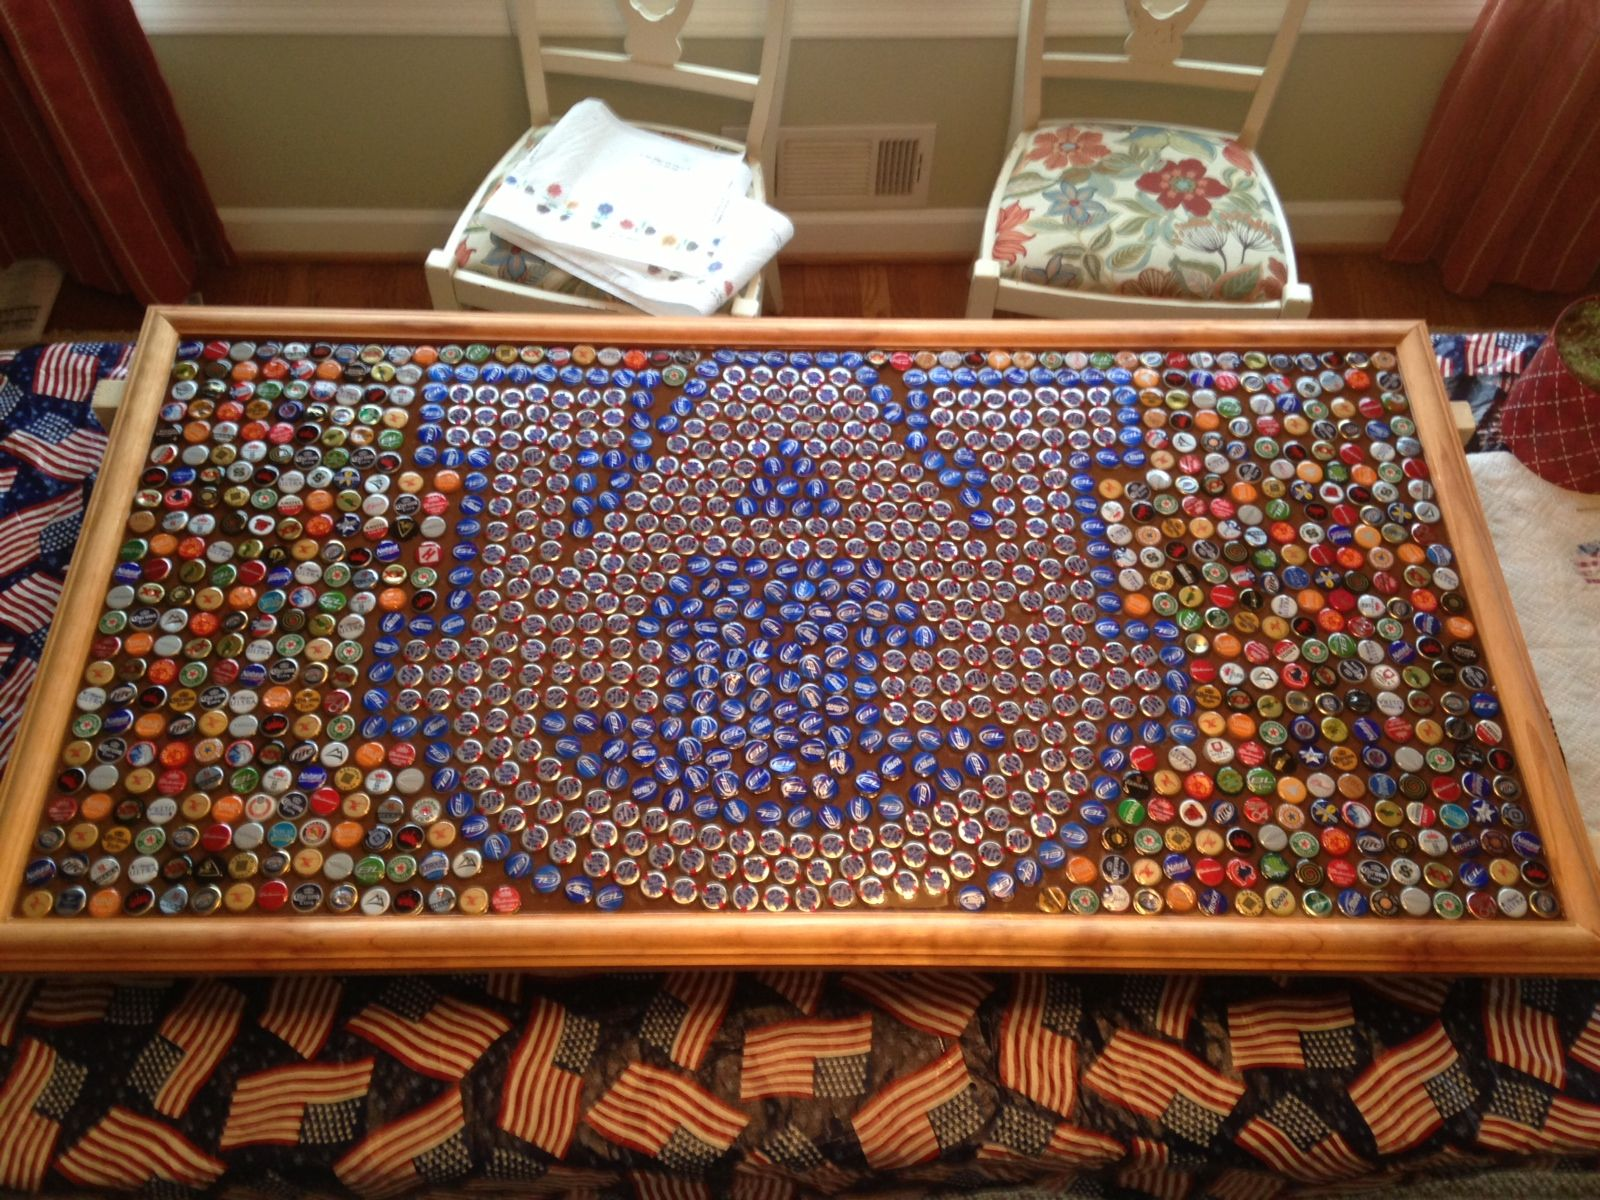 Auburn headboard made out of beer bottle caps